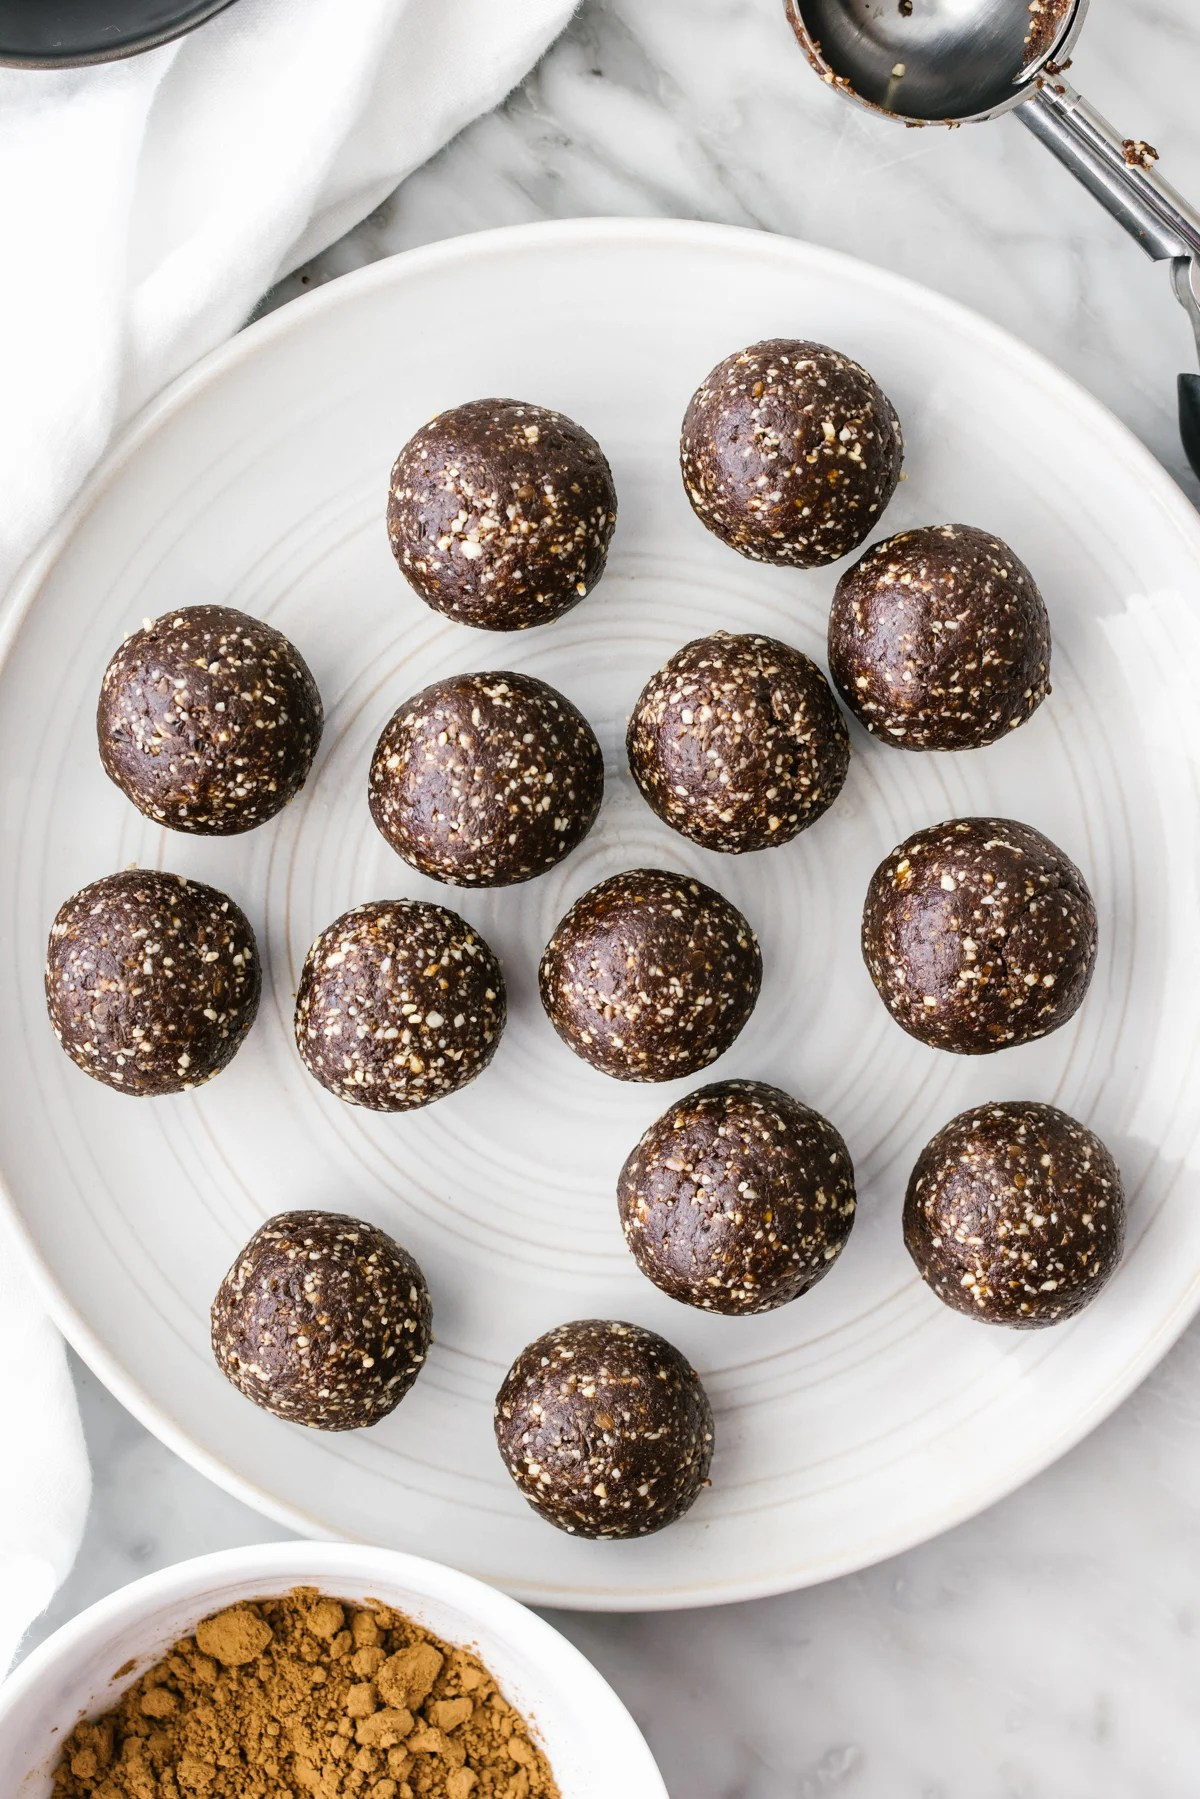 Mint chocolate energy balls on a plate.